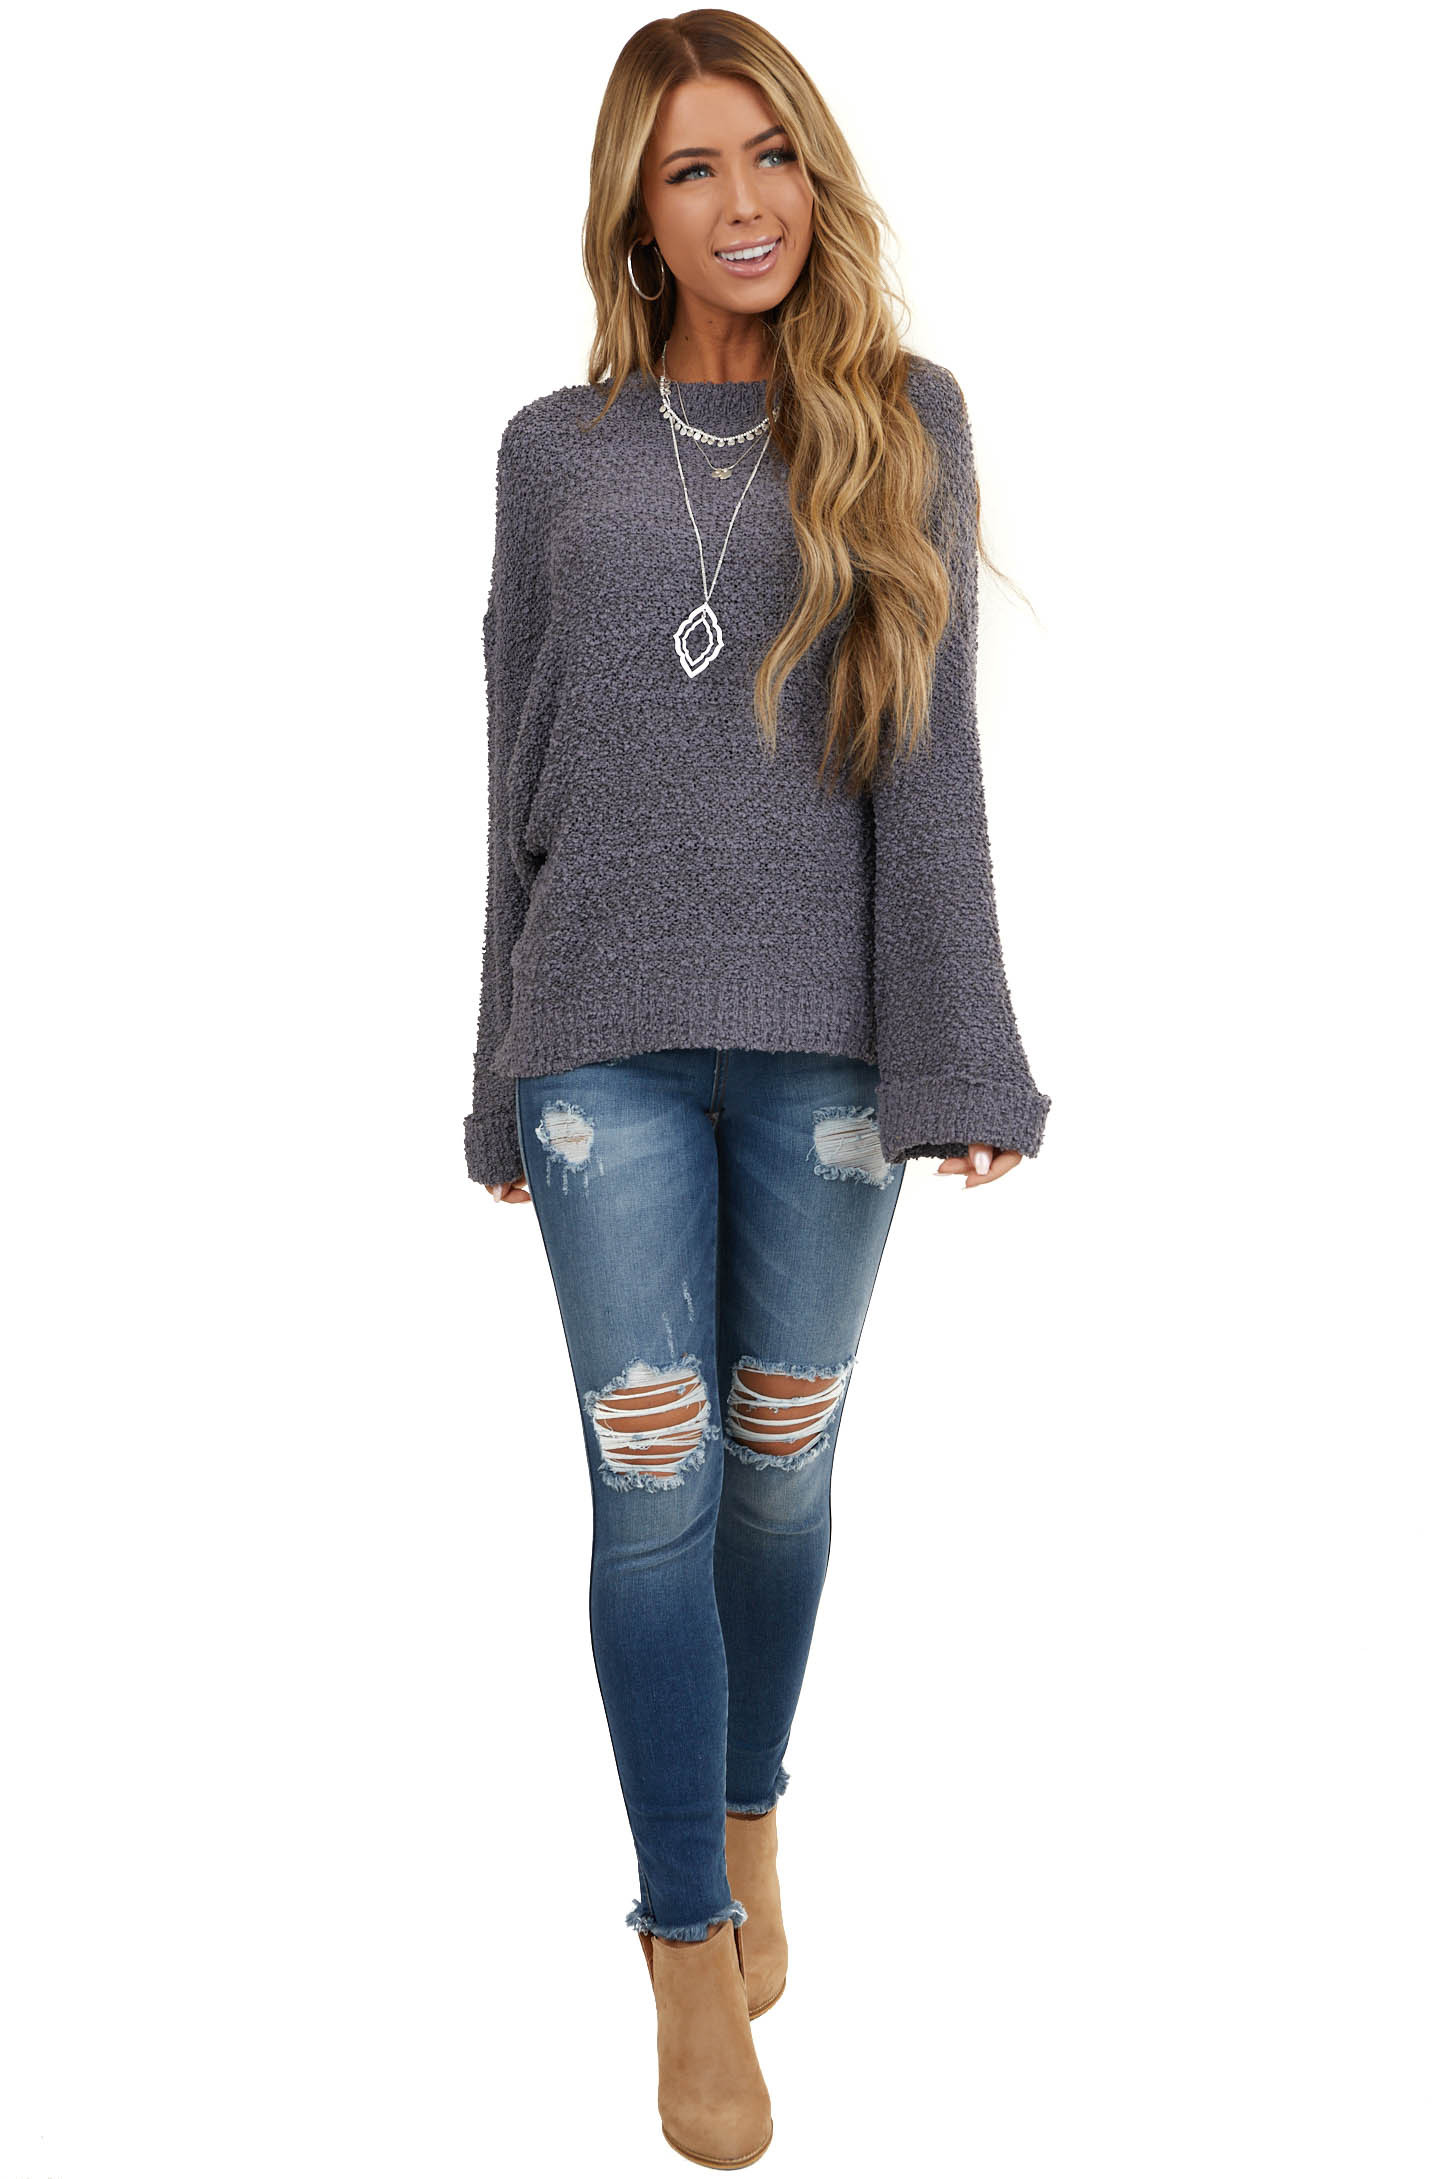 Stormy Grey Popcorn Textured Knit Sweater with Bell Sleeves